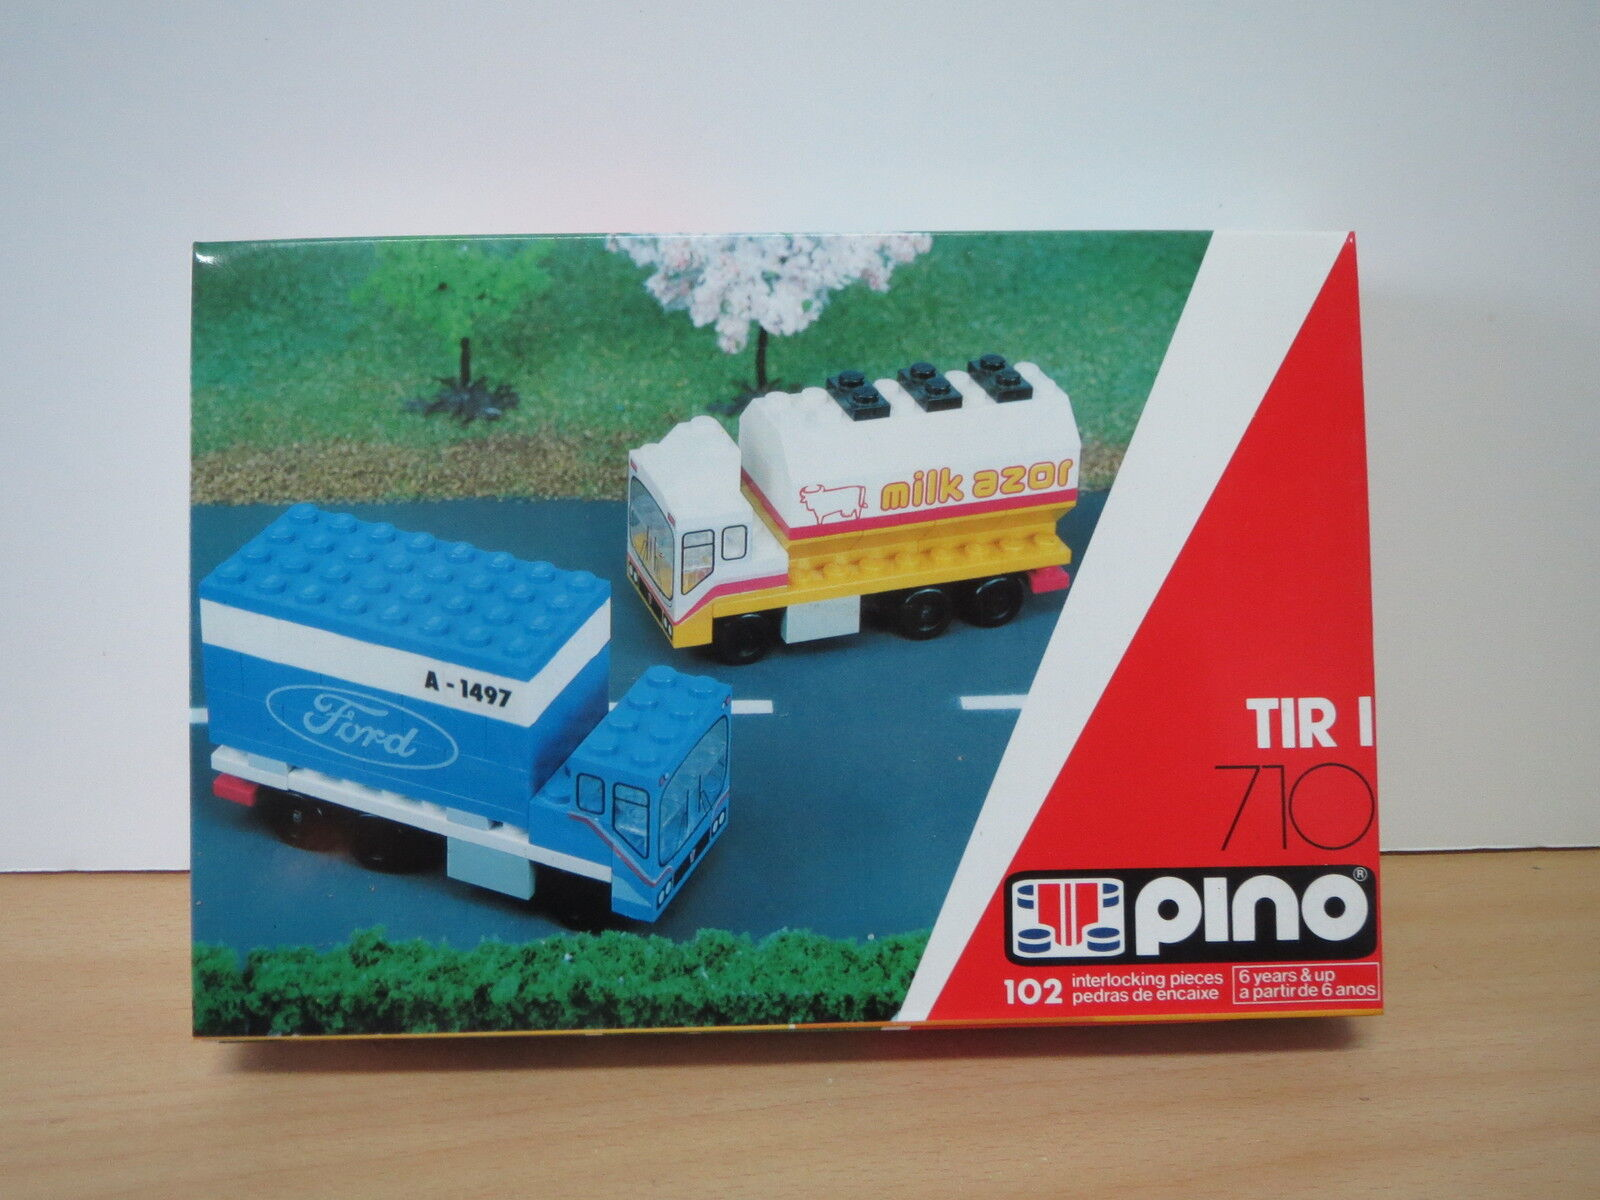 Vintage Portuguese LEGO PINO - TIR I 710 - FORD - Made in Azores (Portugal)